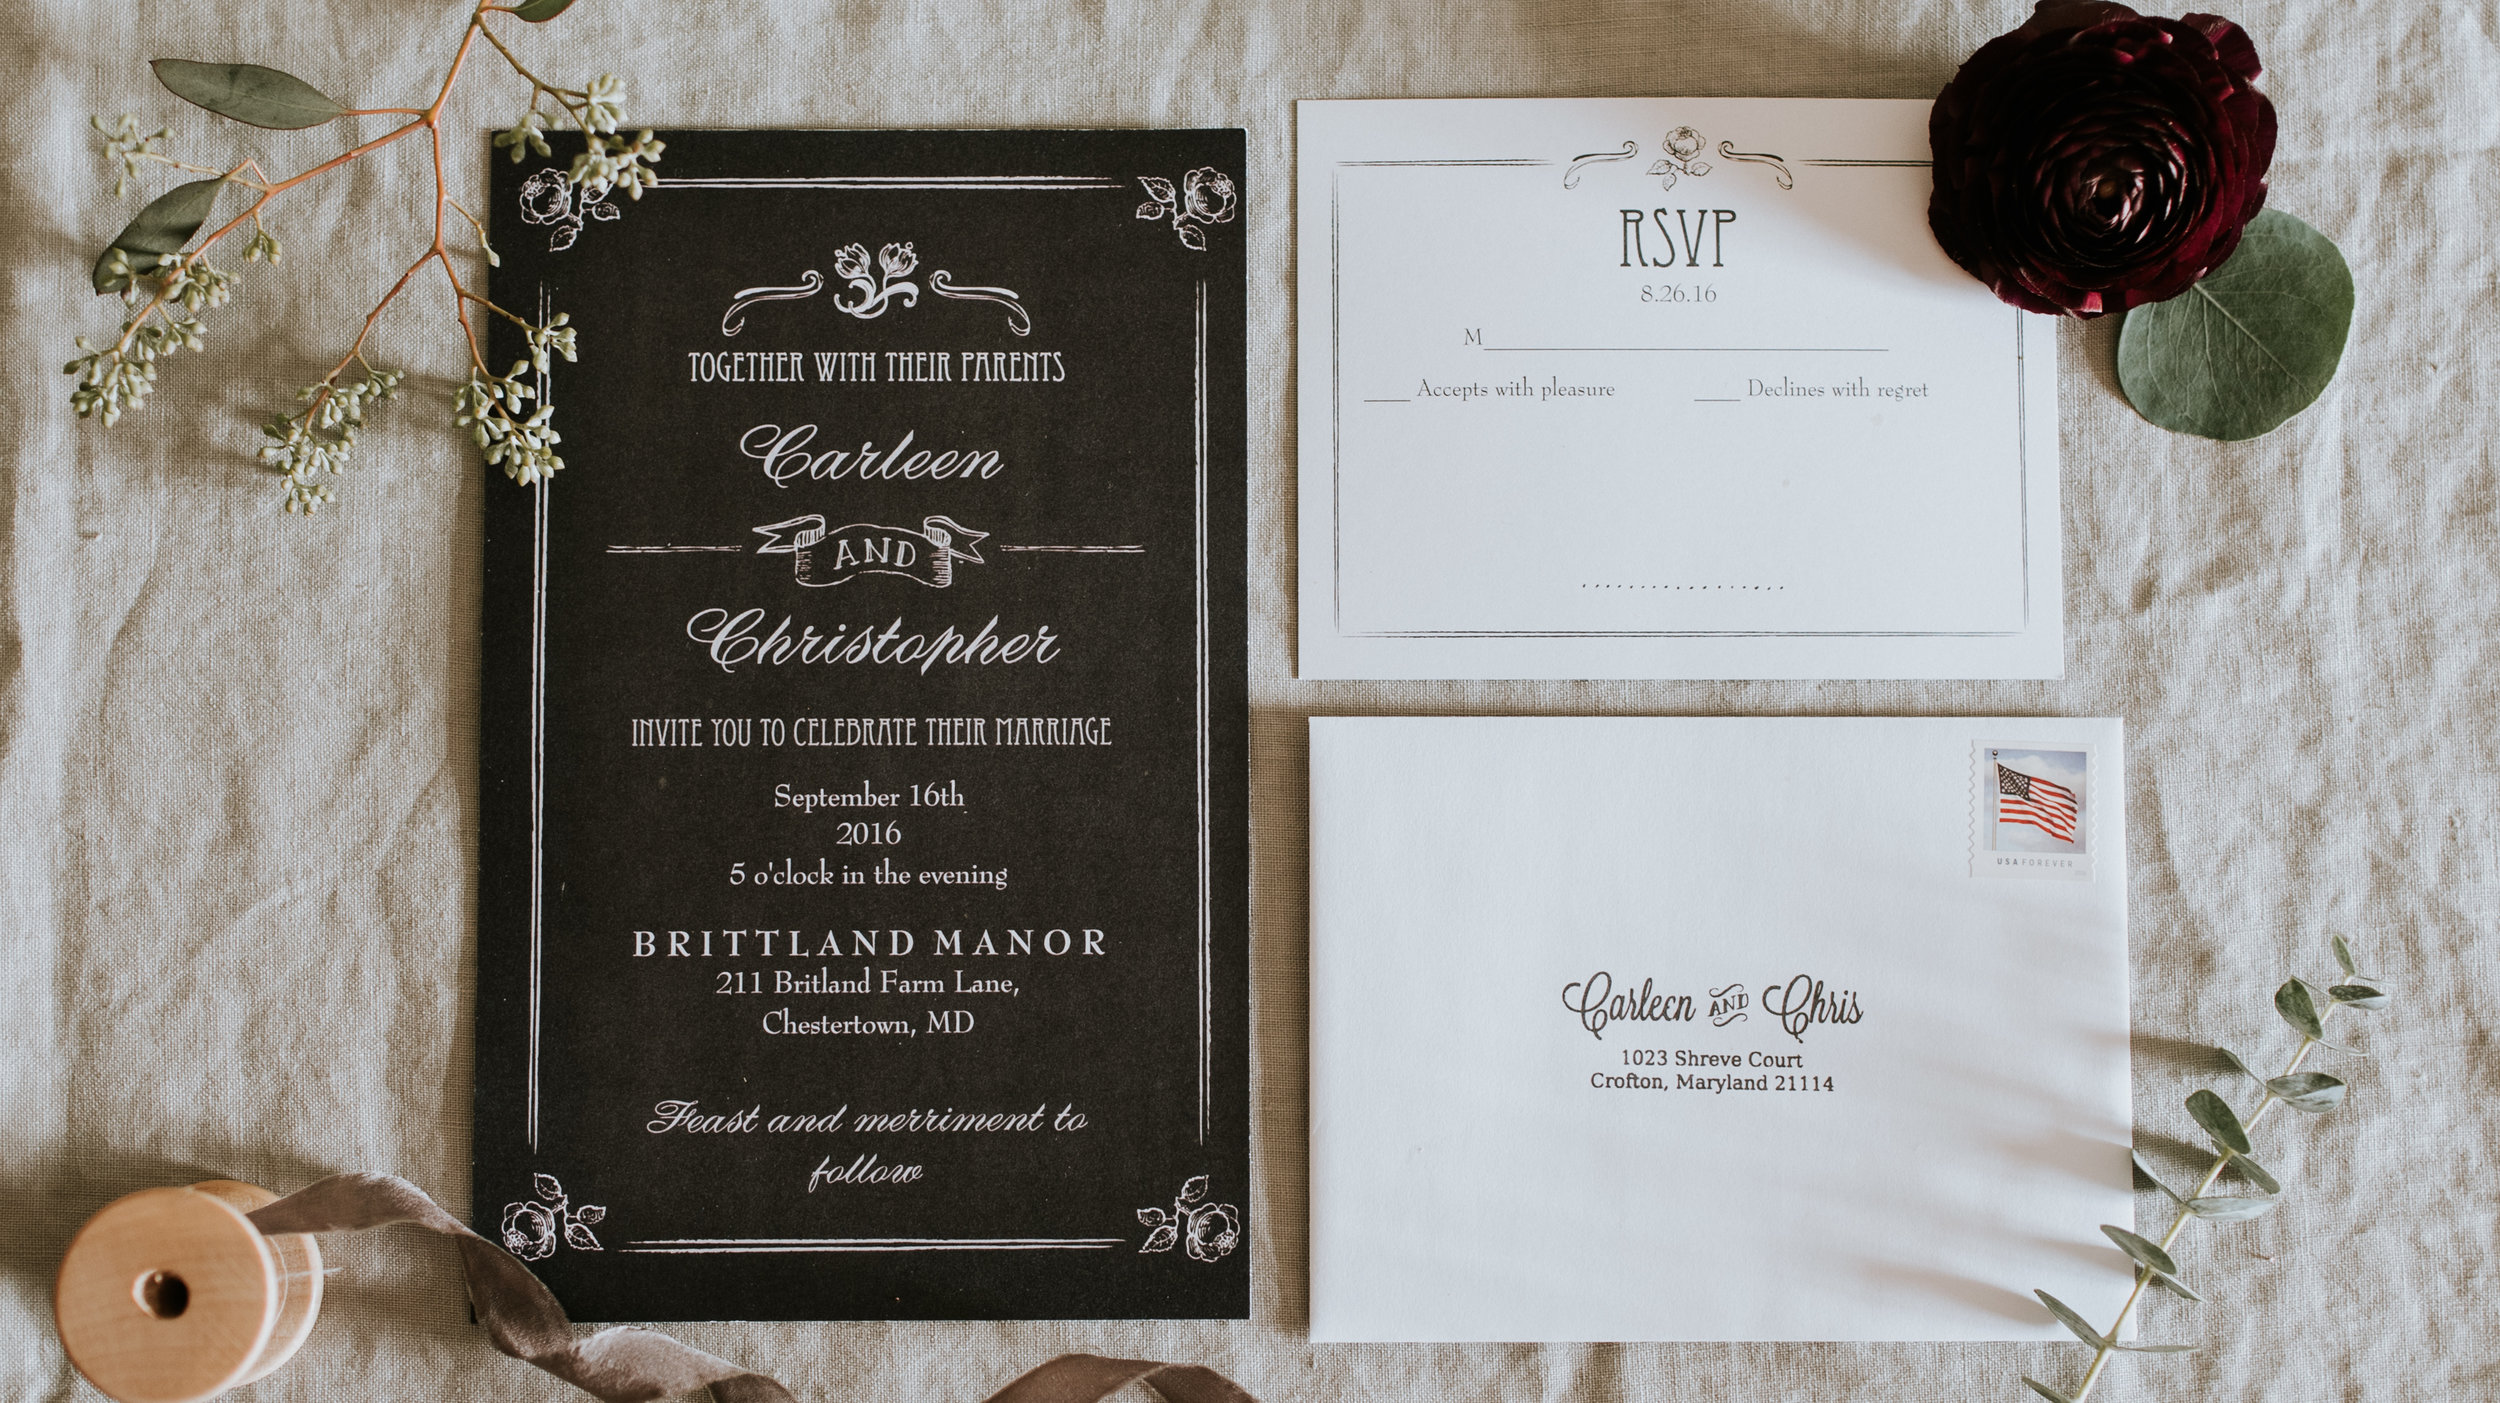 Rustic Oyster Themed Eastern Shore Maryland Outdoor Wedding by East Made Event Company Wedding Planner and Bekah Kay Creative42.jpg